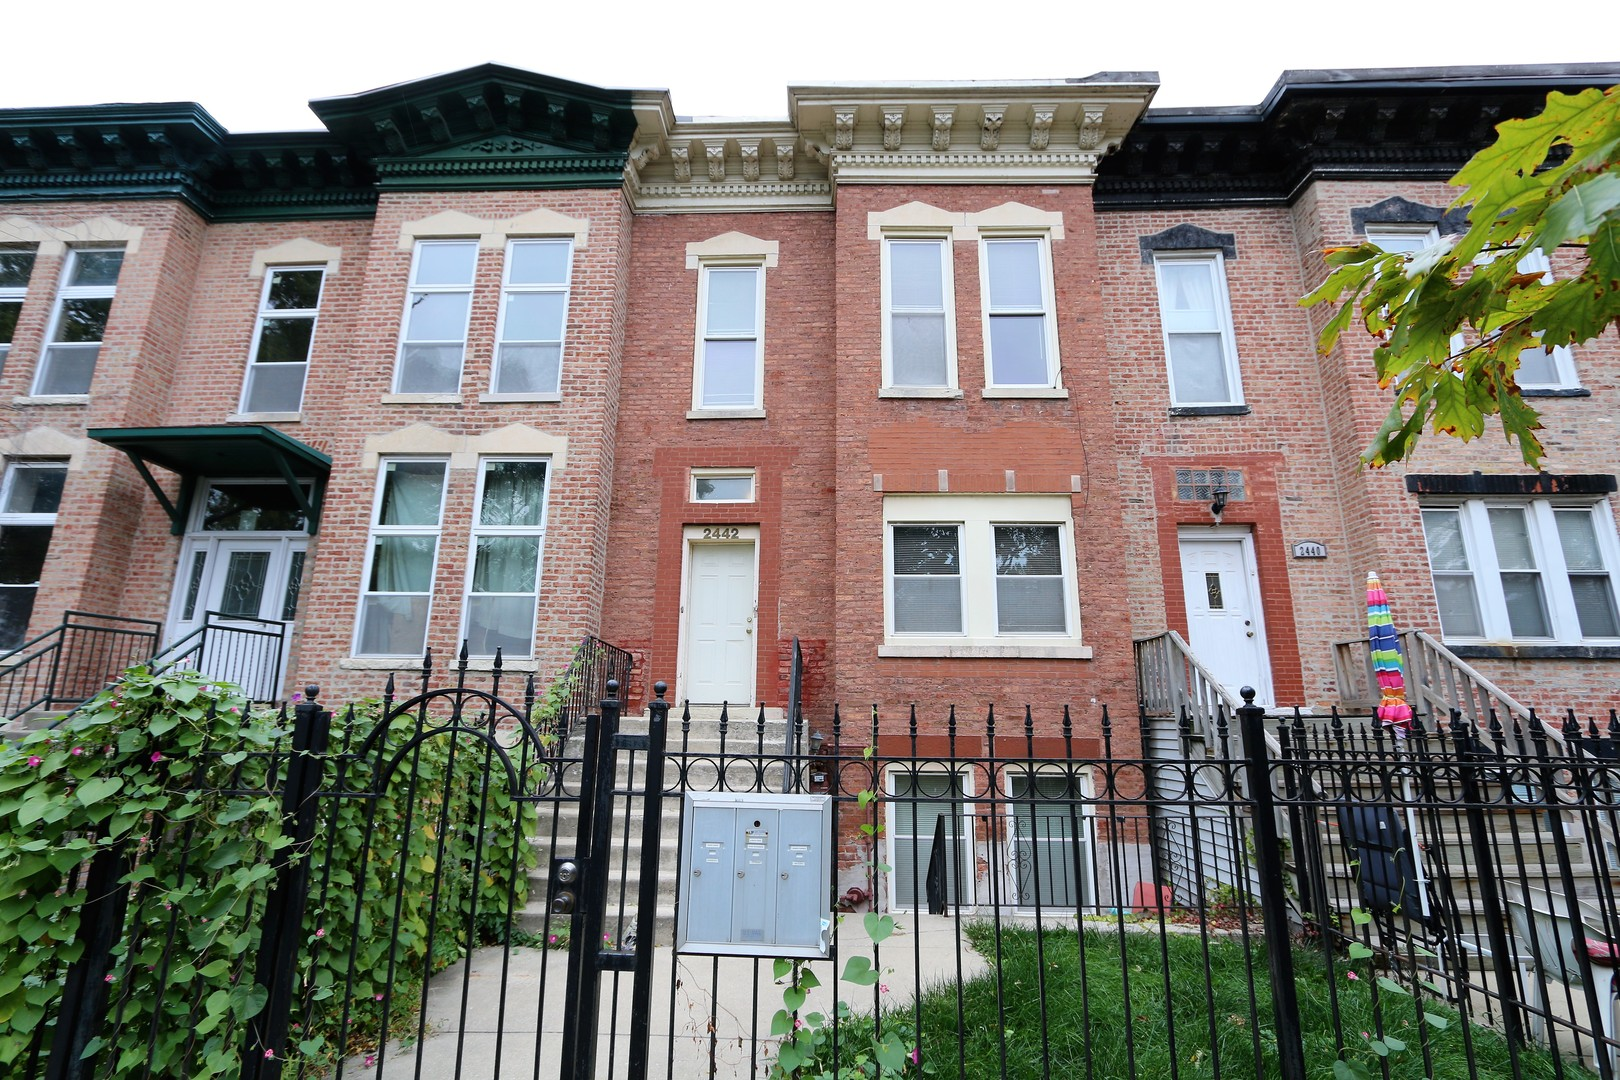 2442 Taylor Street, Chicago, Illinois 60612, 1 Bedroom Bedrooms, ,1 BathroomBathrooms,Residential Rental,For Rent,Taylor,10910136